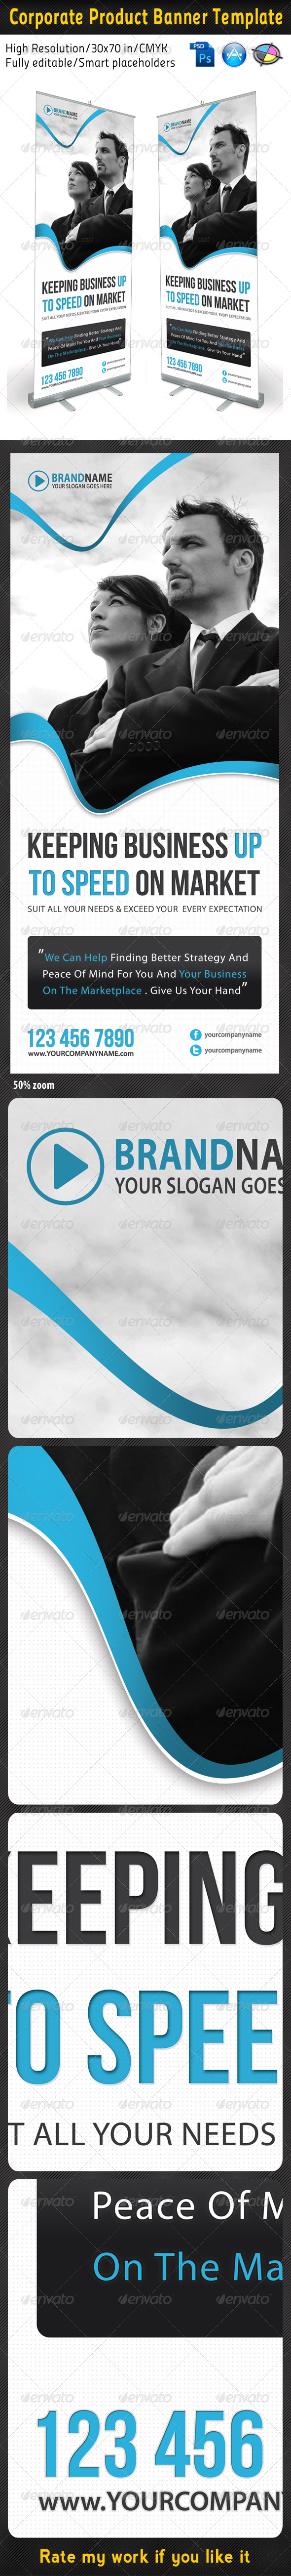 Corporate Multipurpose Banner Template 06 - Signage Print Templates